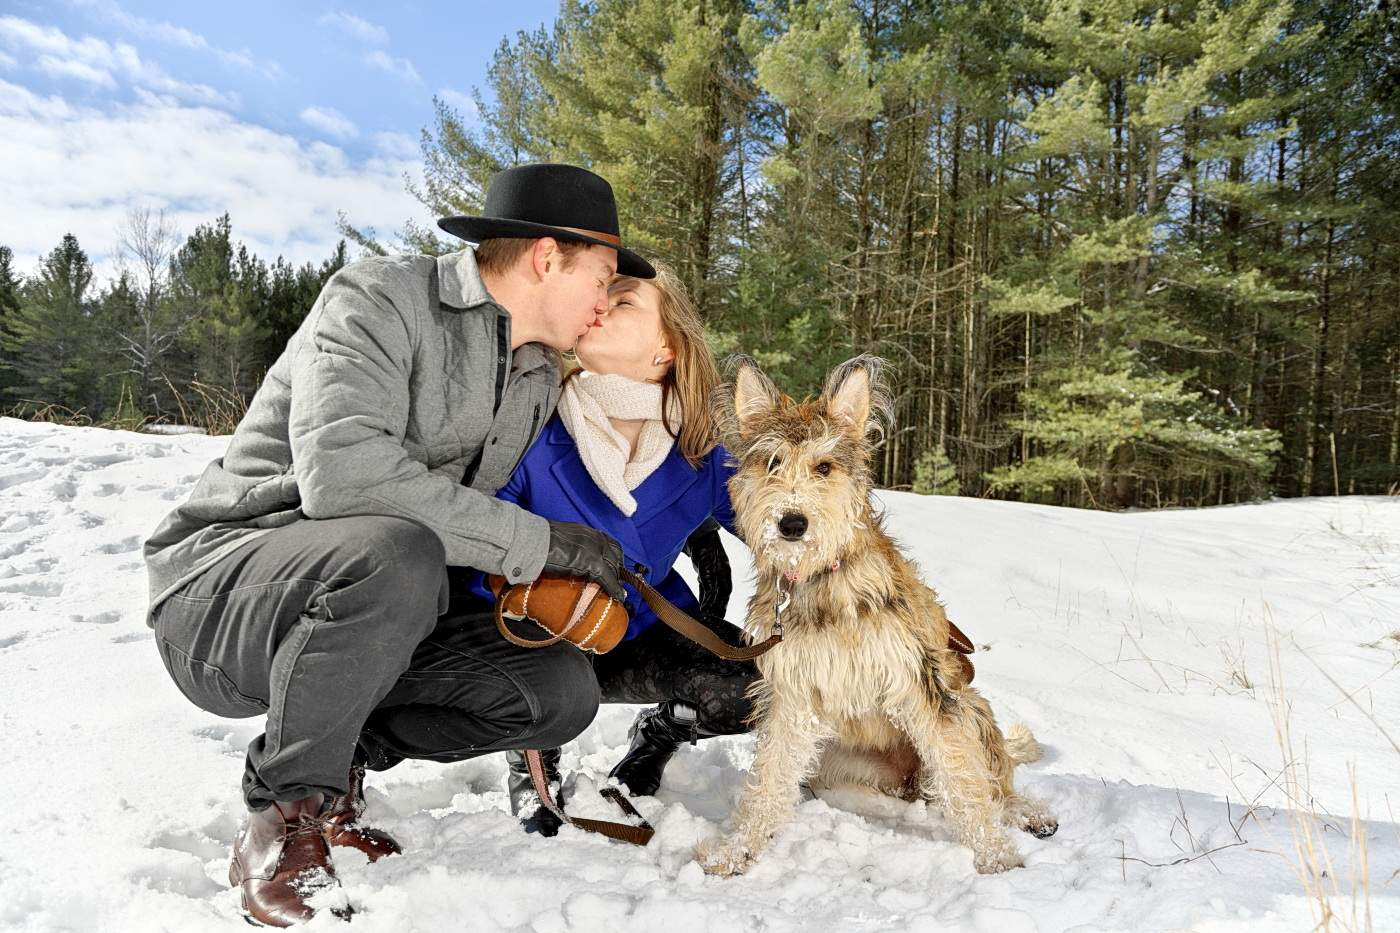 Wasaga beach photographer winter engagement session at Wasaga Beach provincial Park